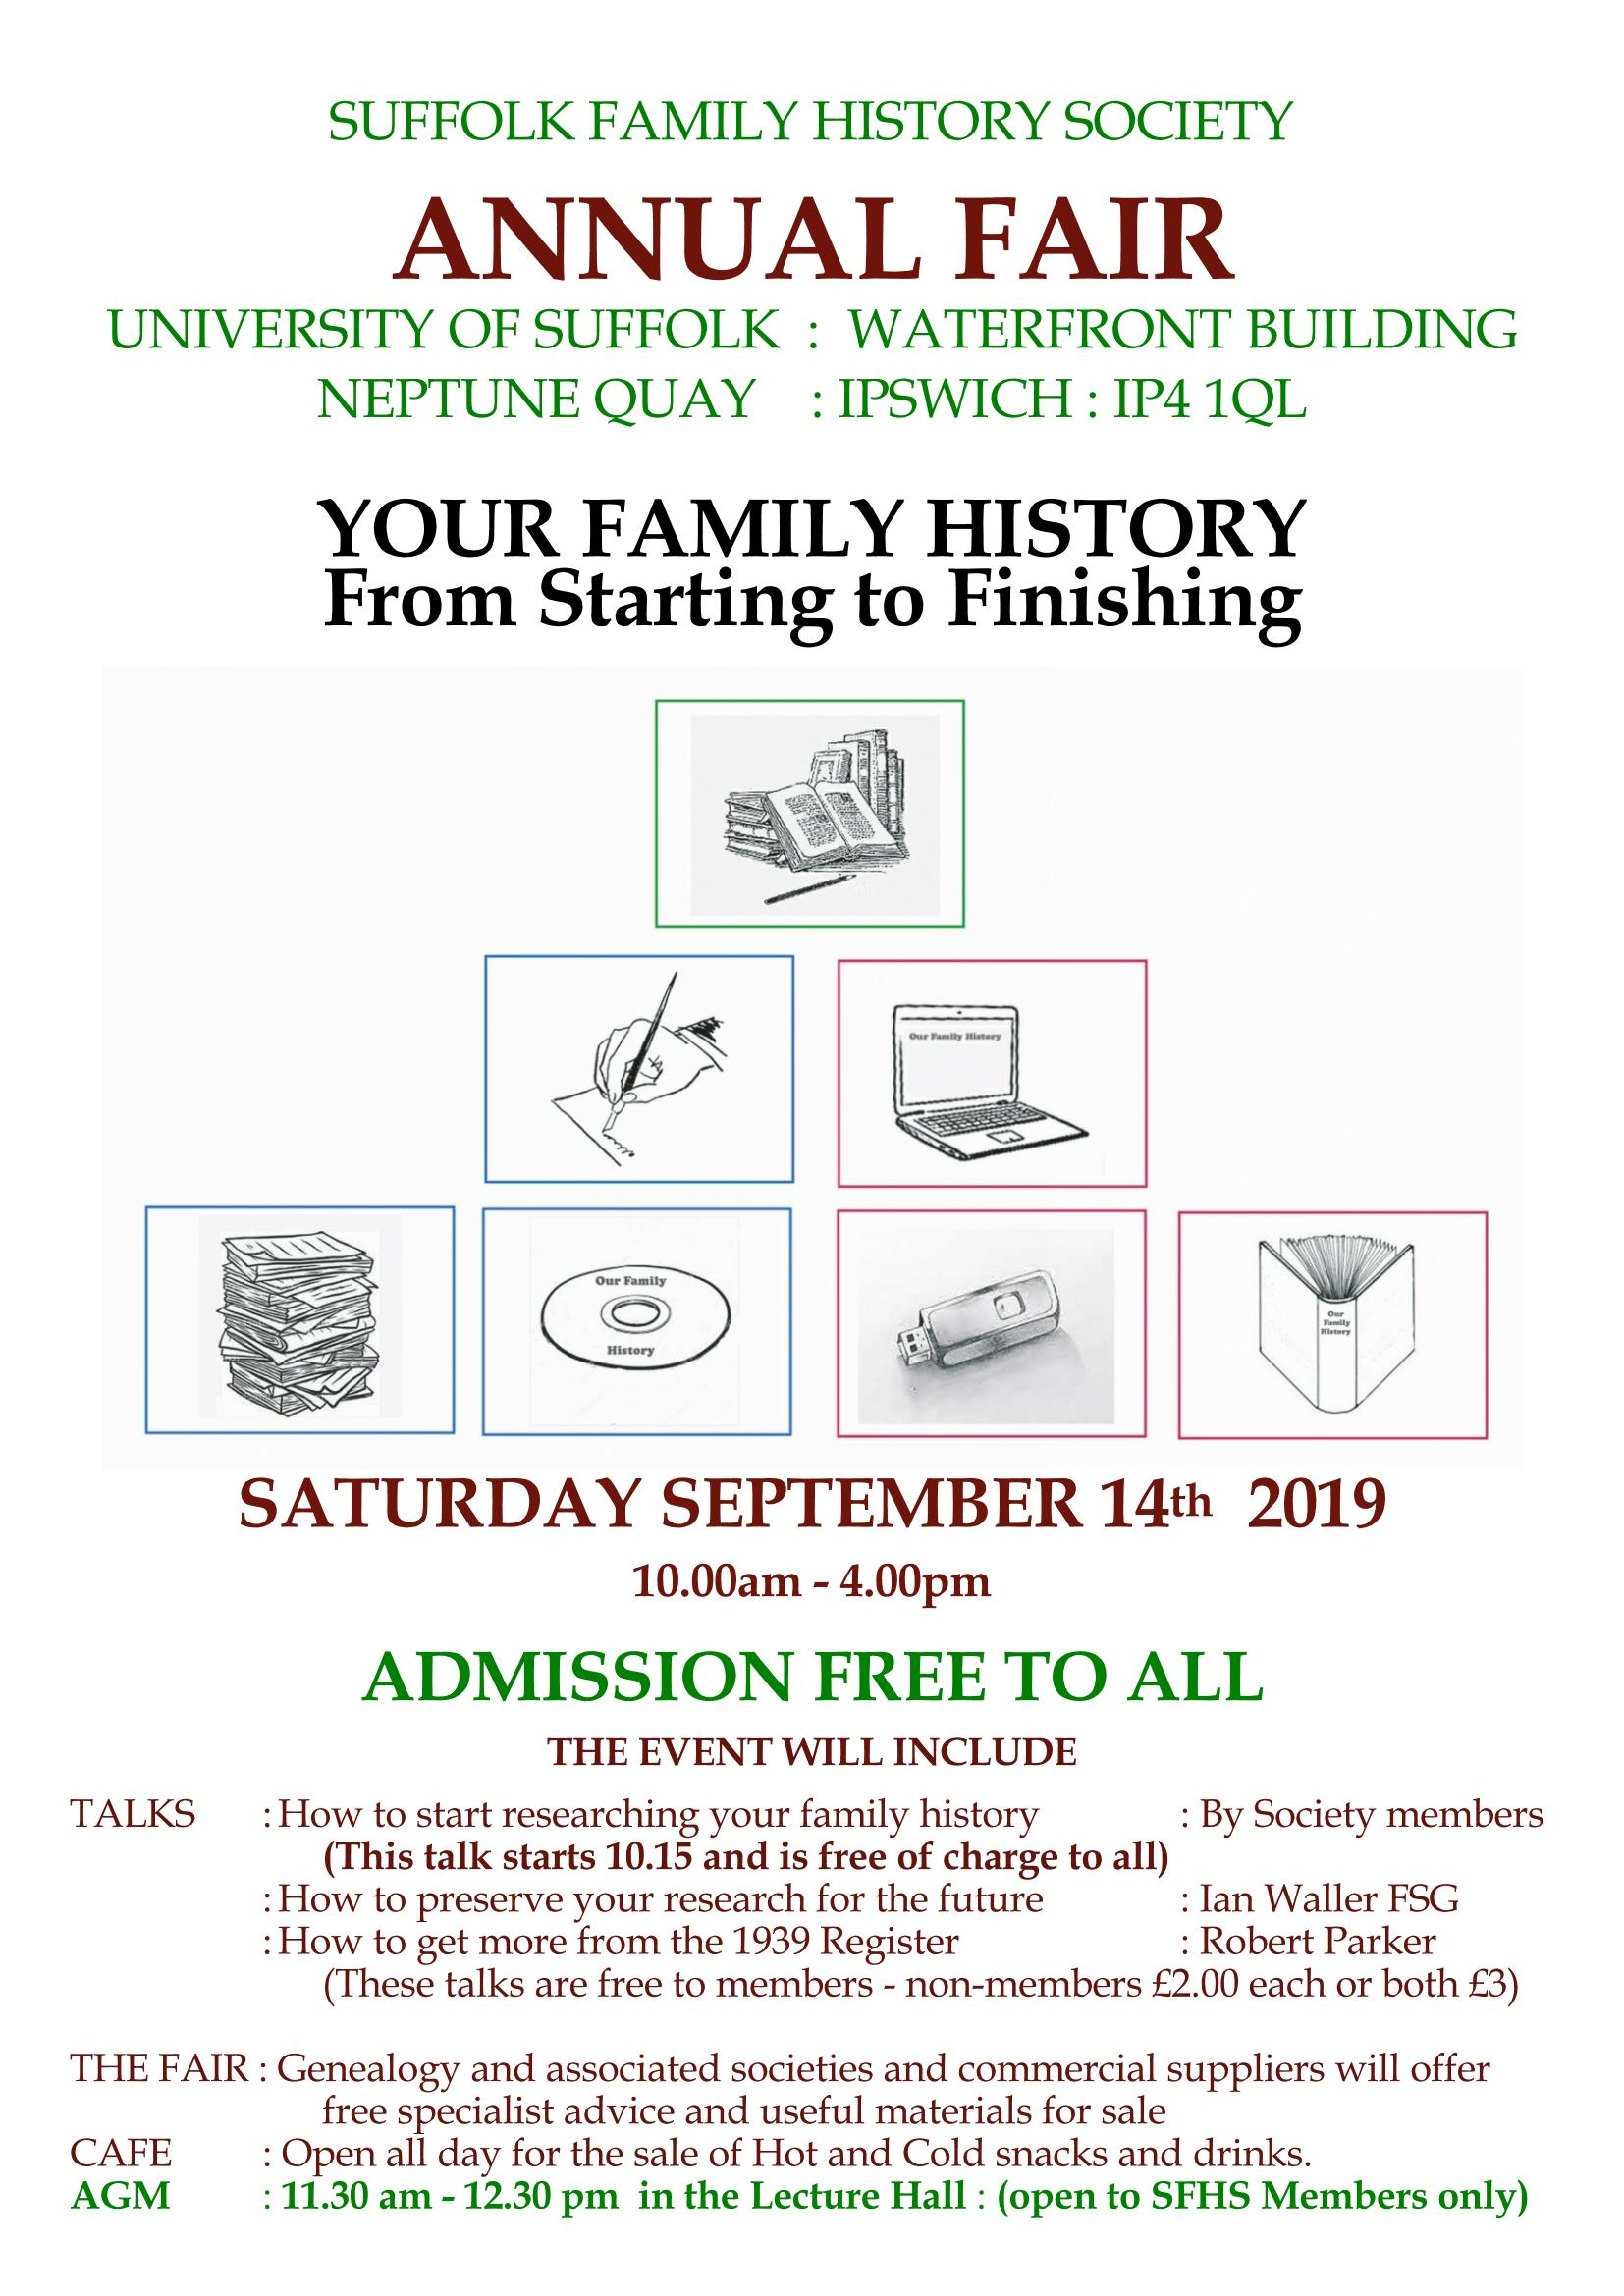 Welcome - SFHS - Suffolk Family History Society